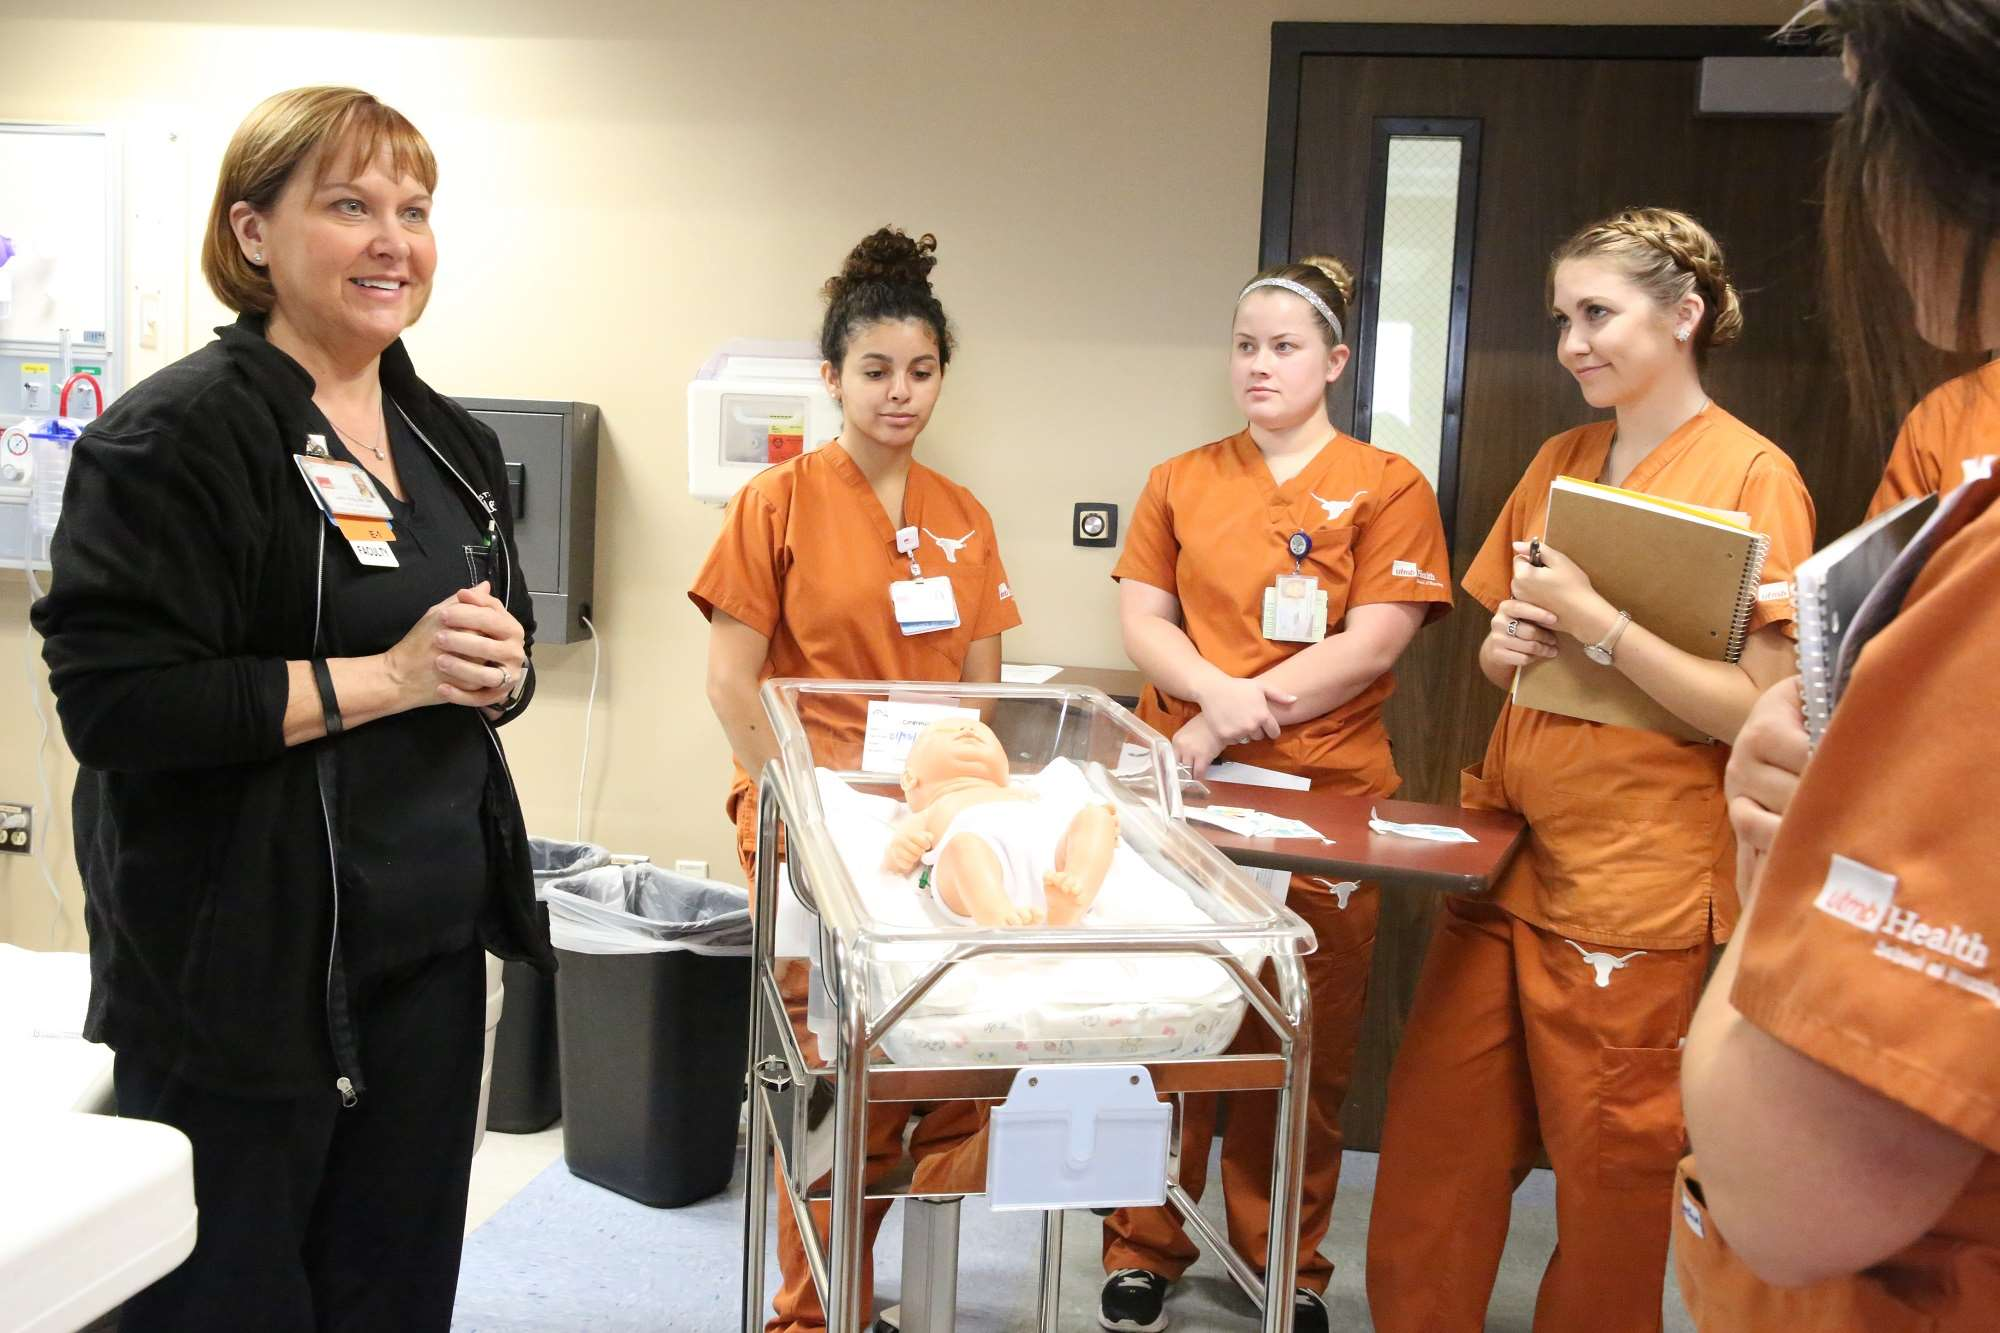 BSN Traditional Program | Pedi Students 2 | UTMB School of Nursing